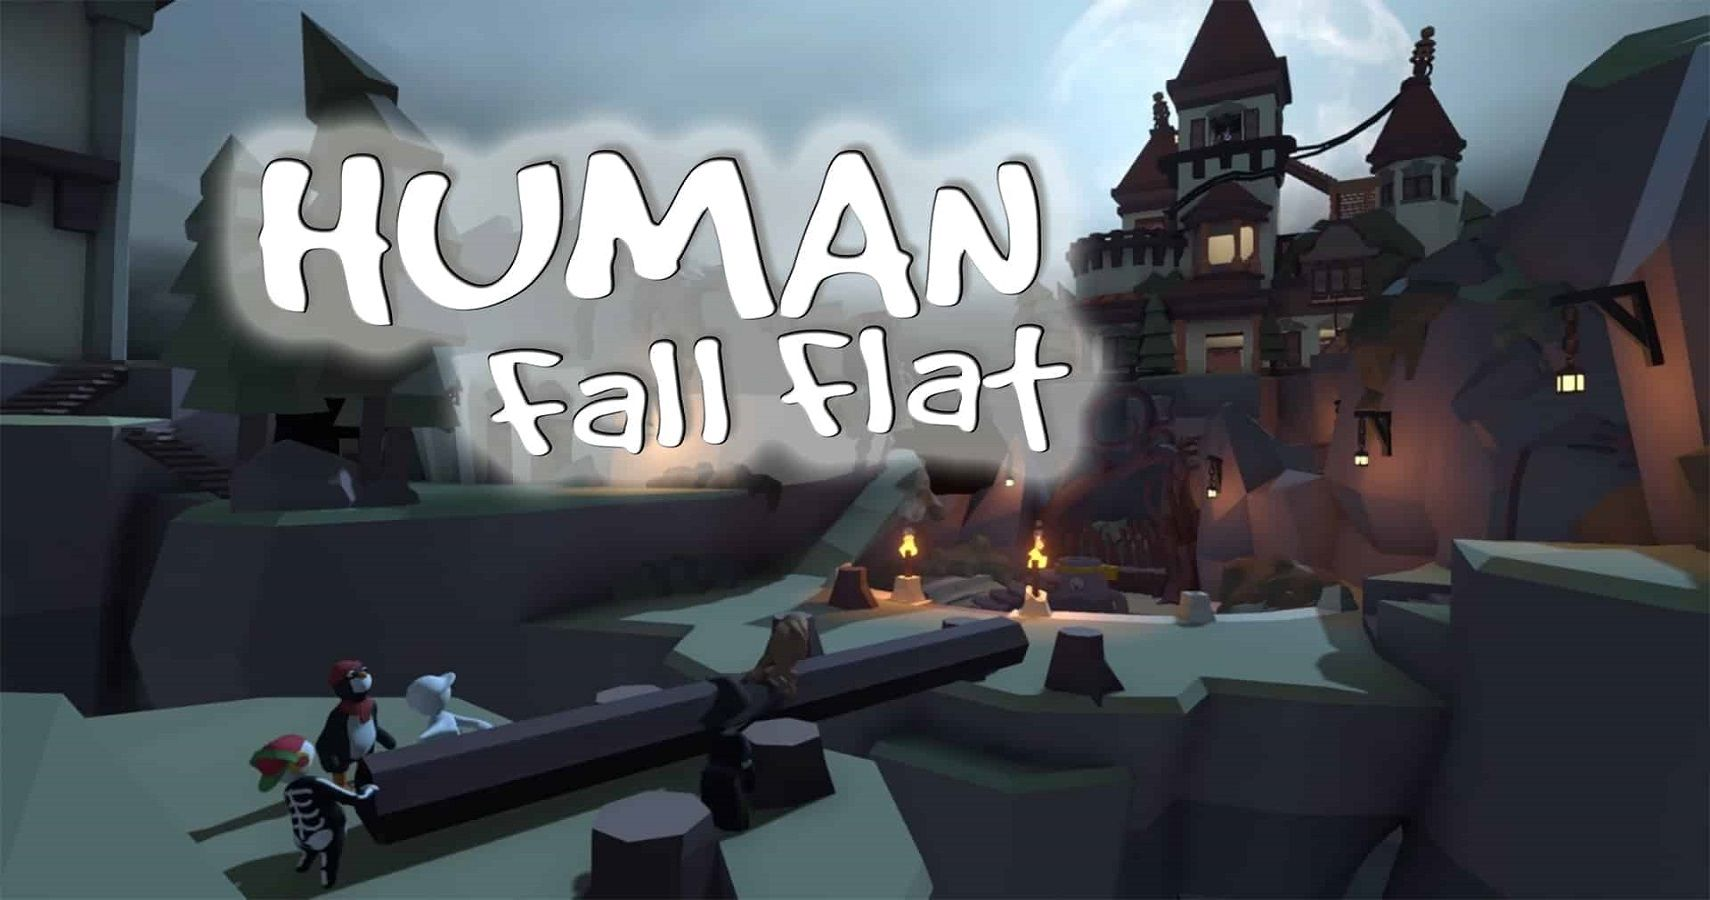 Human Fall Flat Developers Have New Physics-Based Games On The Way